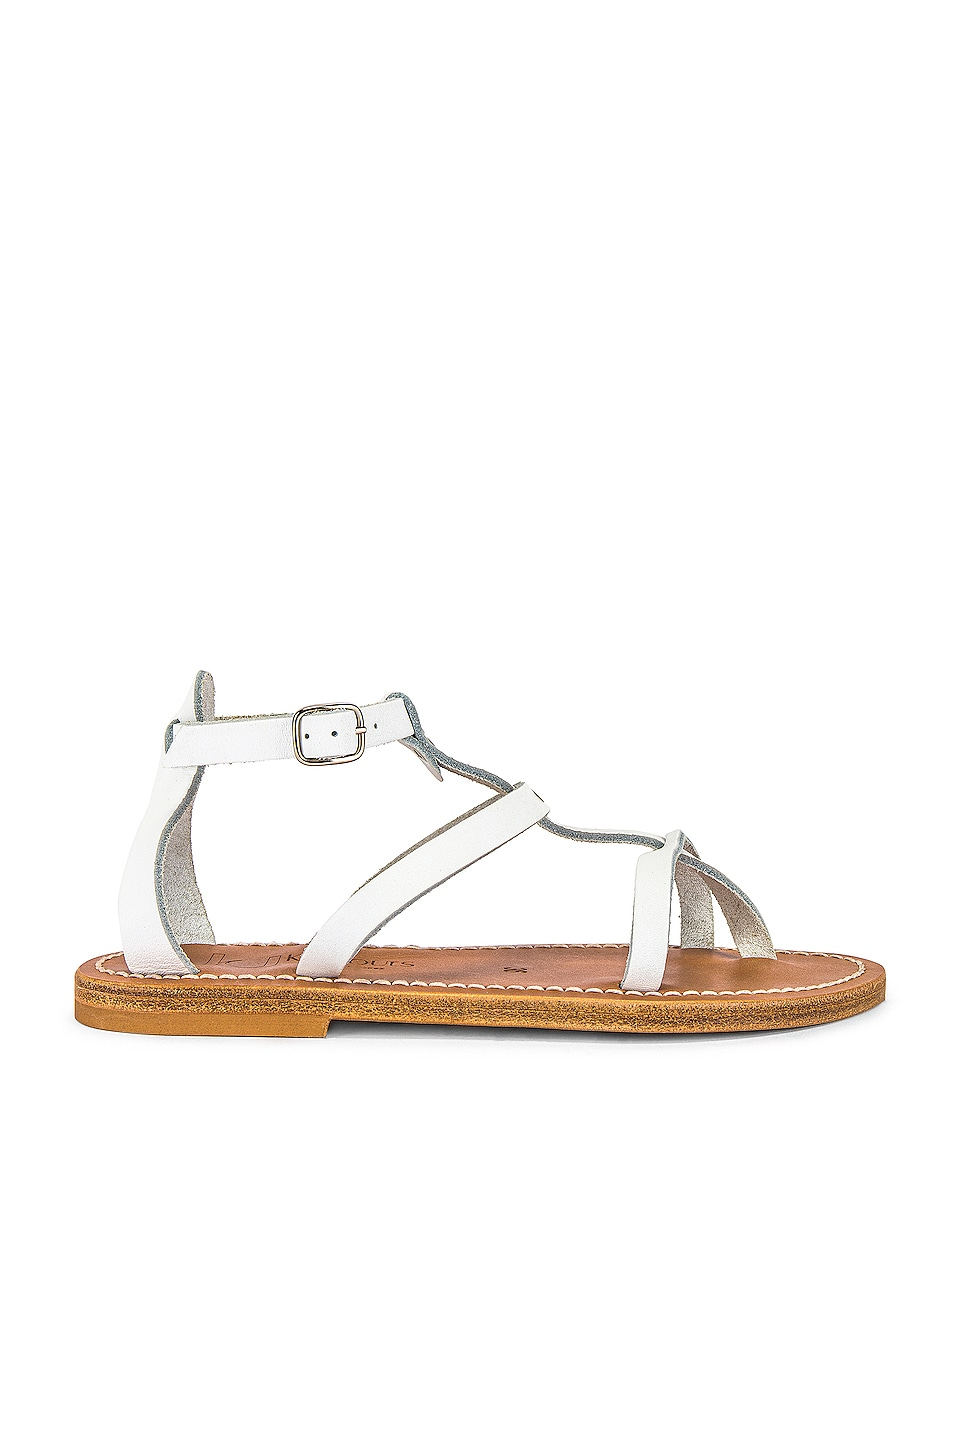 K Jacques Antioche Sandal in Pul Blanc